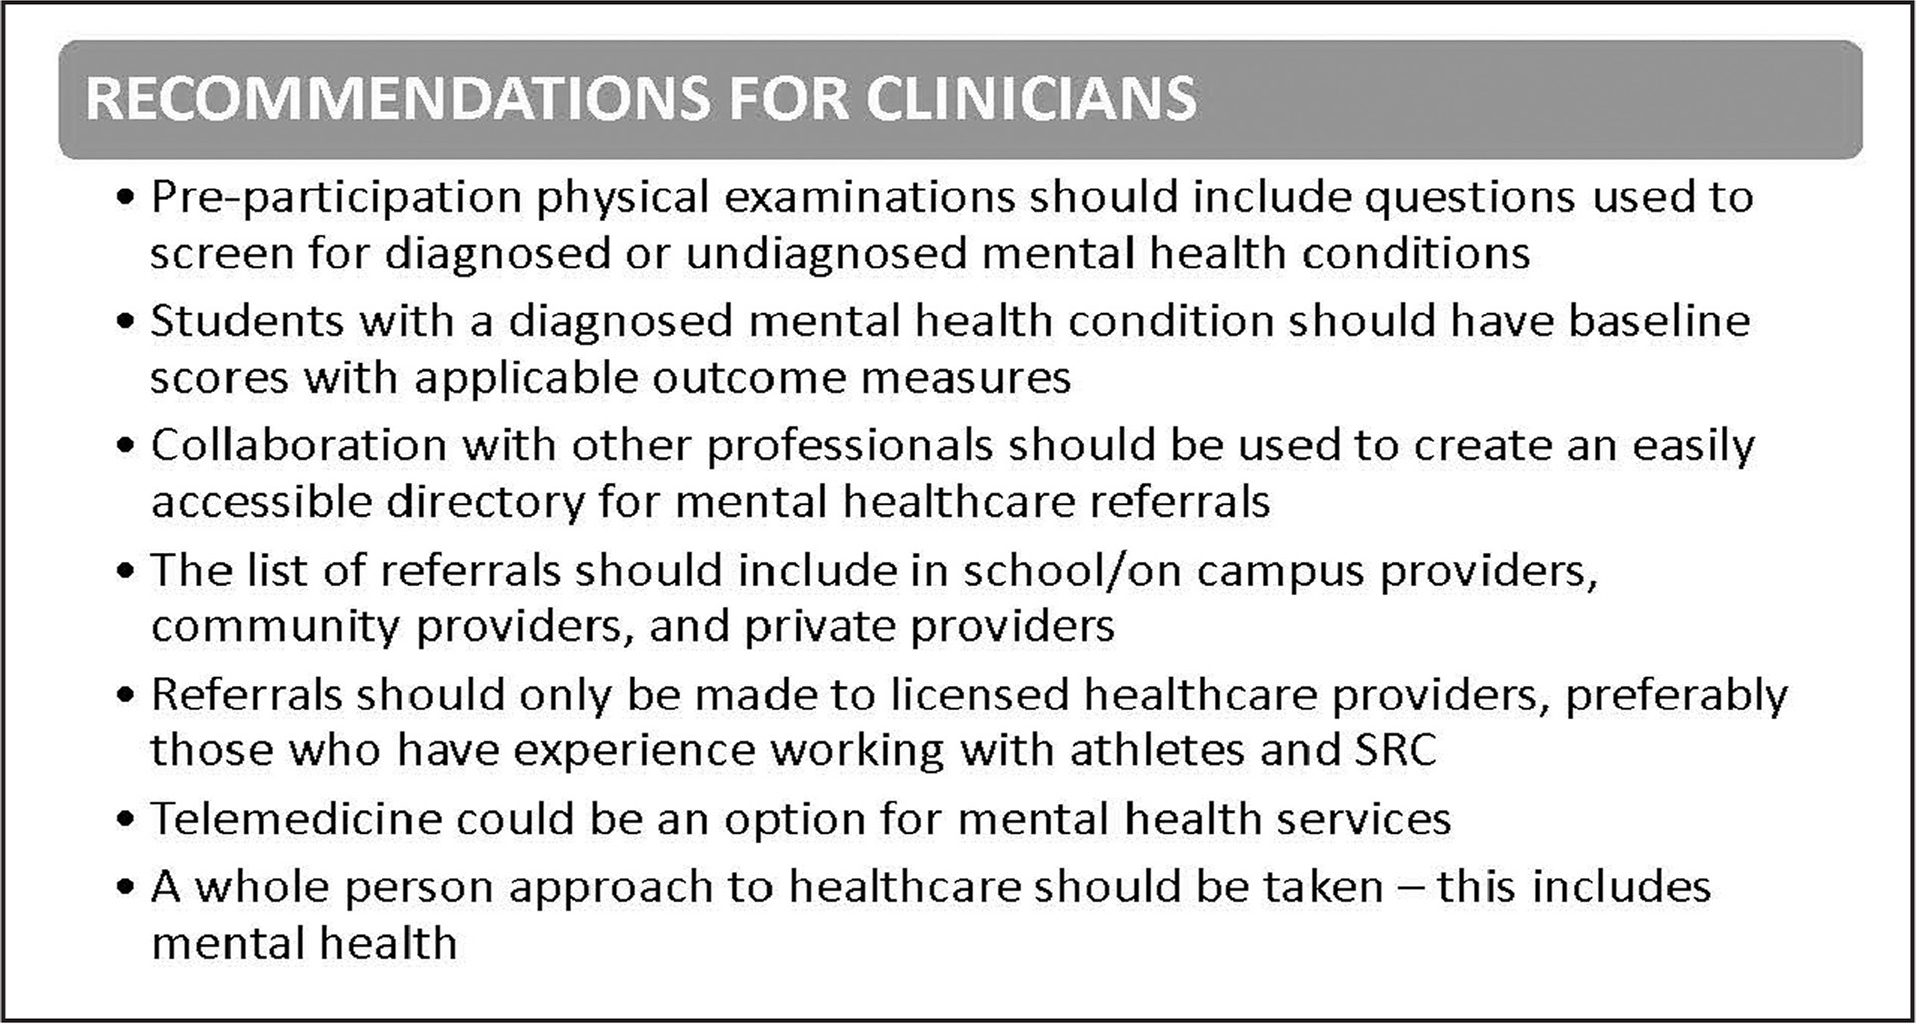 Recommendations for clincians regarding mental health concerns following concussion. SRC = sport-related concussion